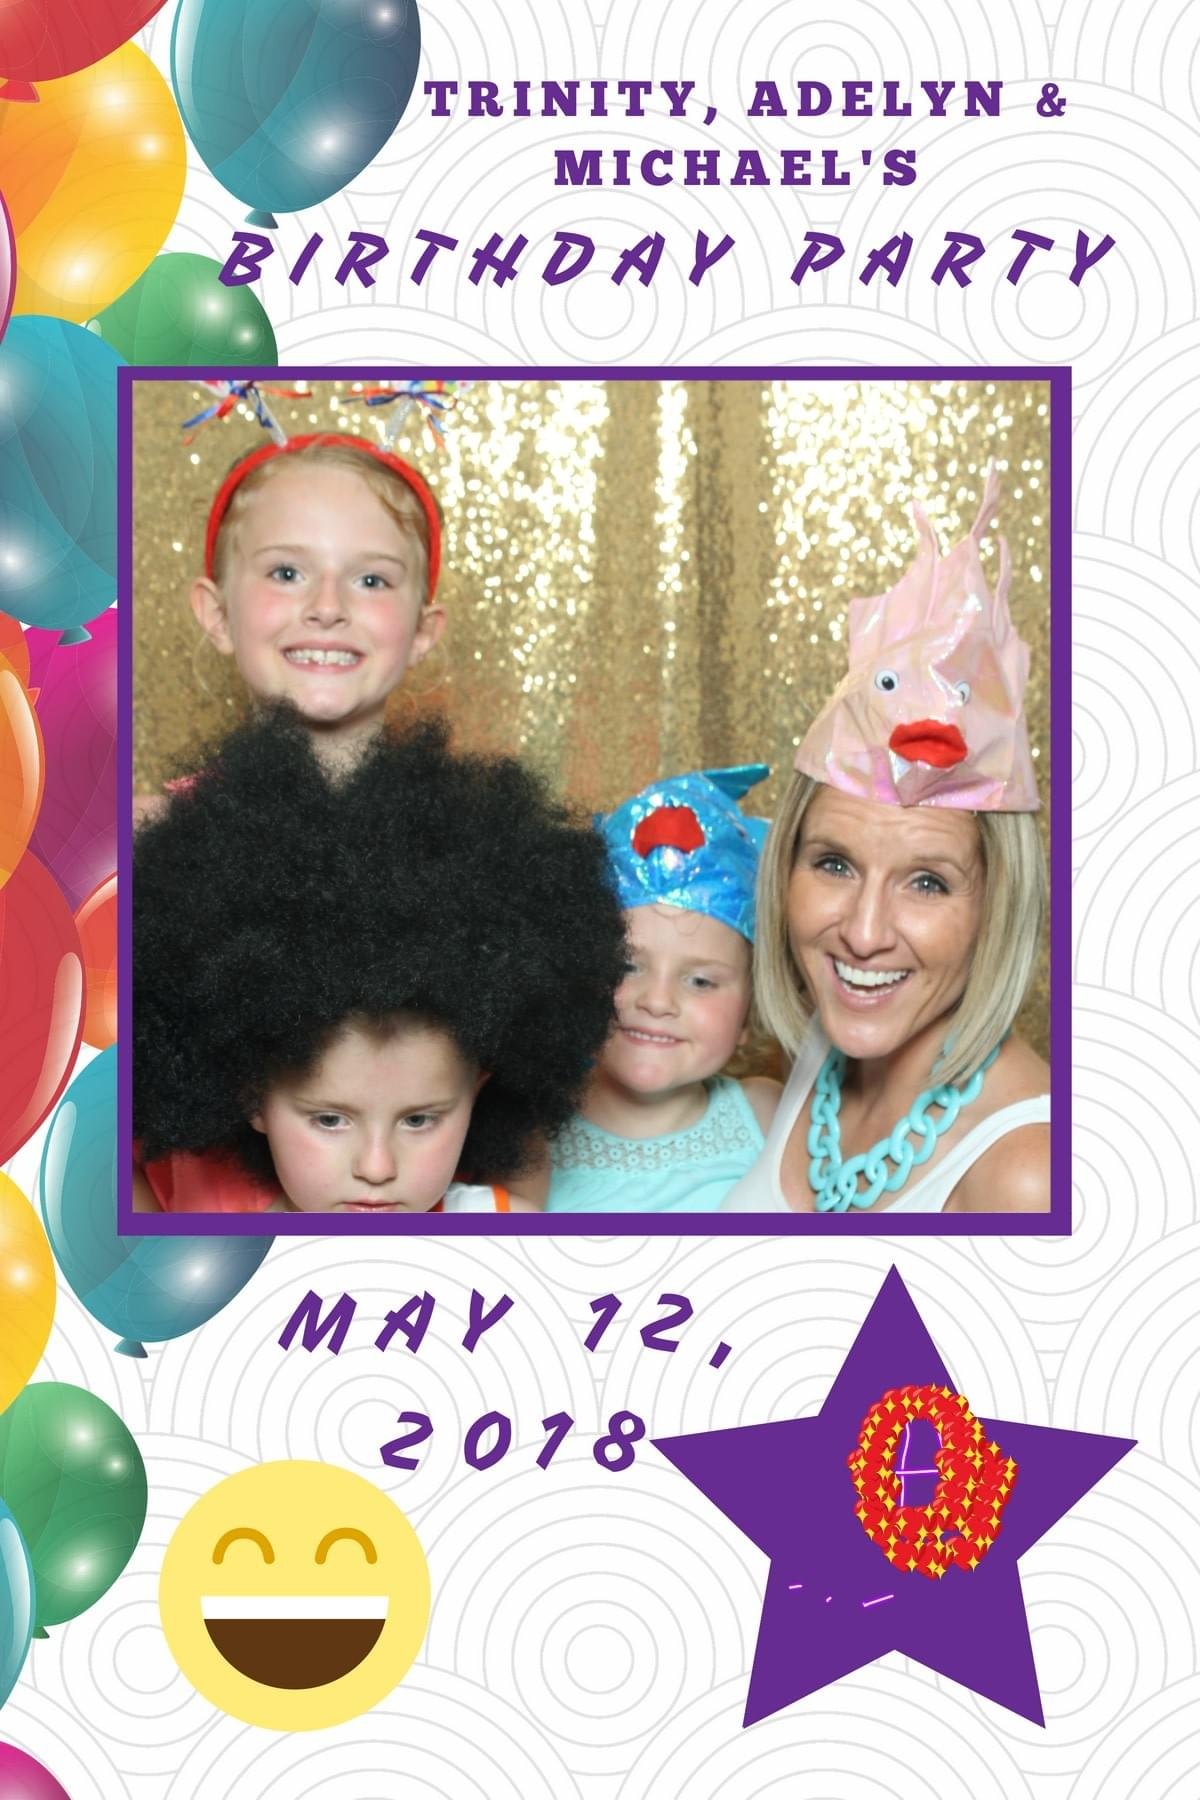 The Magic Selfie Mirror bringing the fun to a kids birthday party